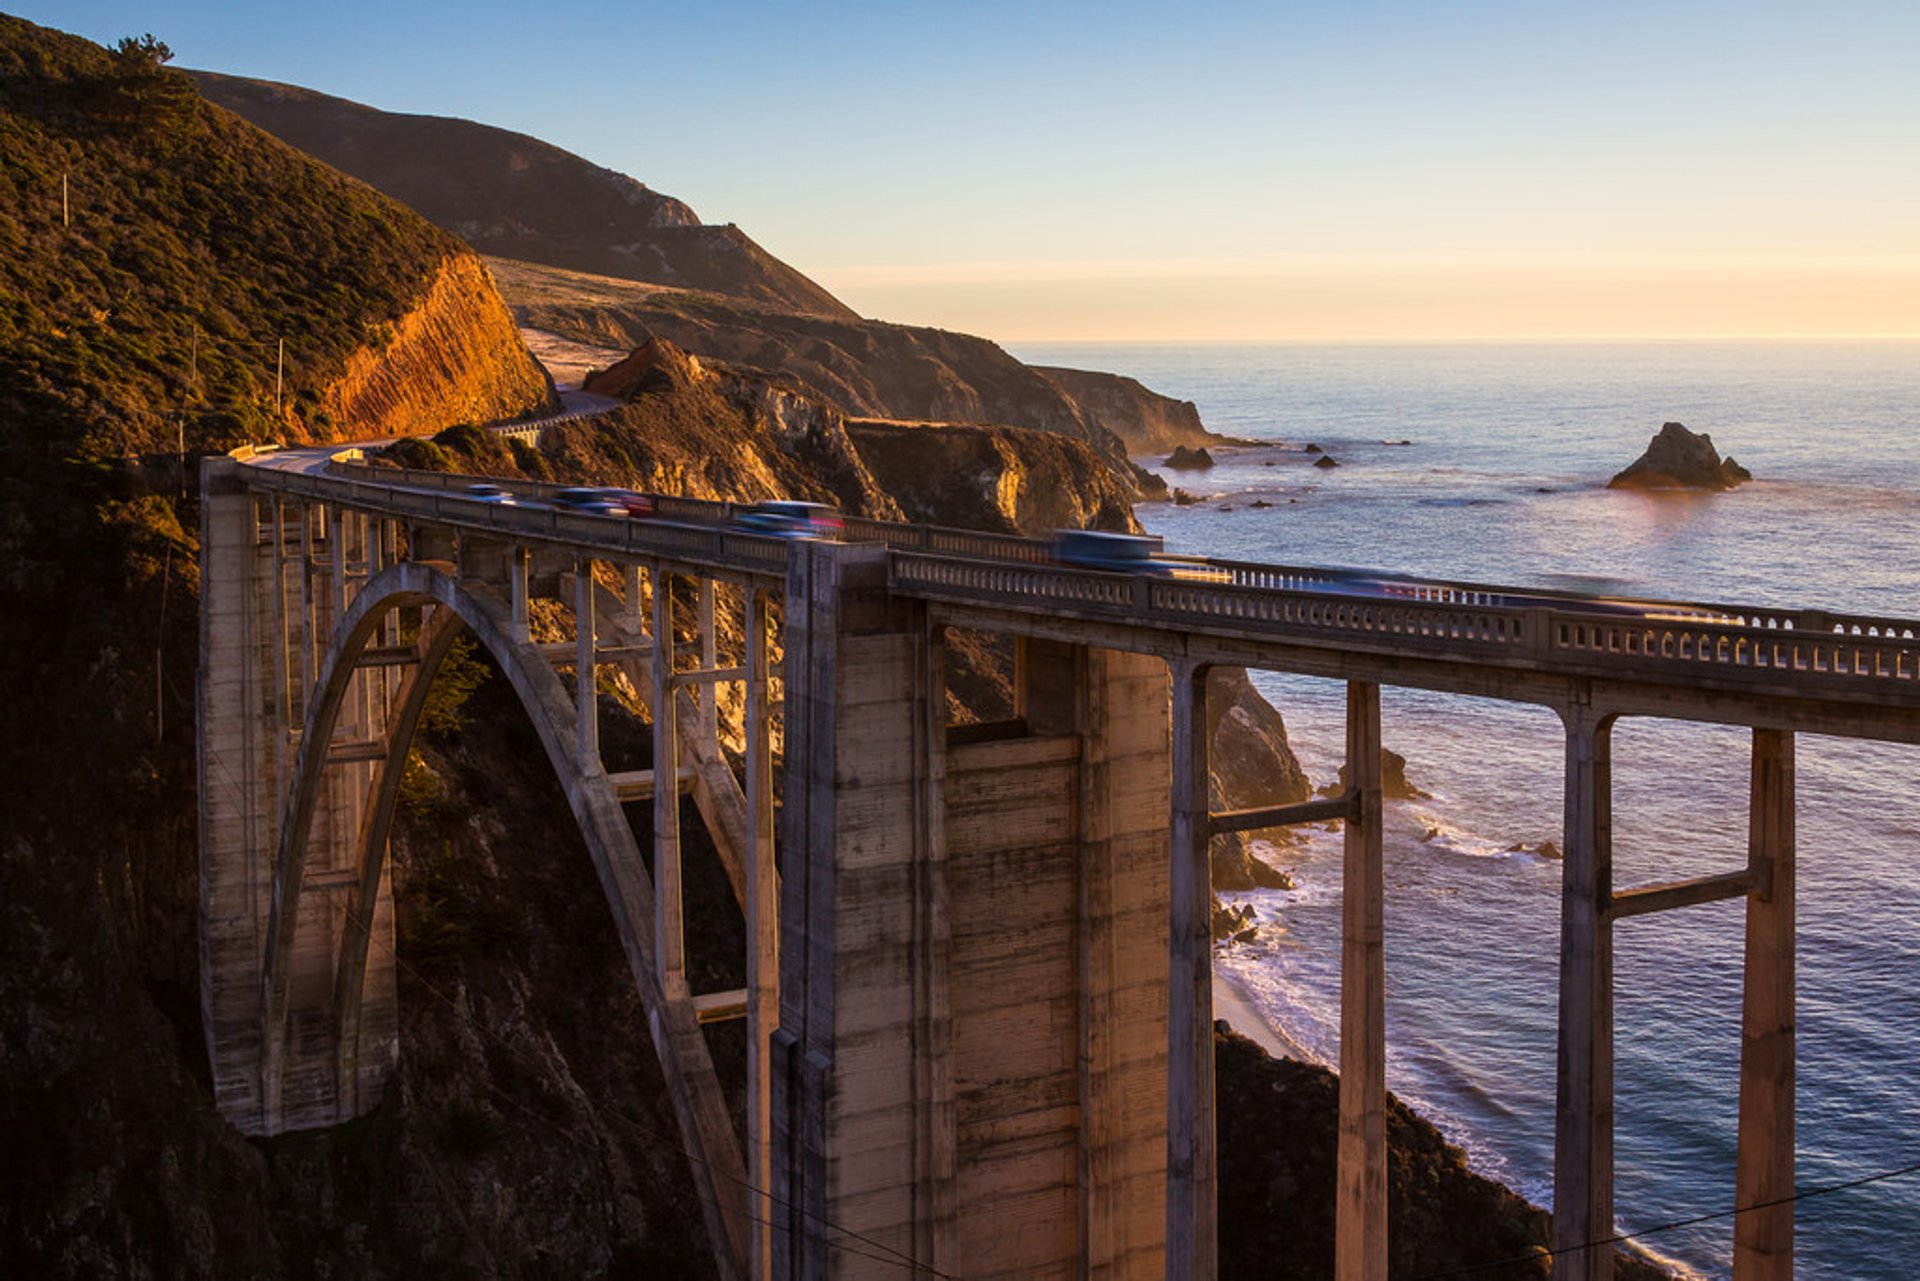 The Bixby Creek Bridge 2020